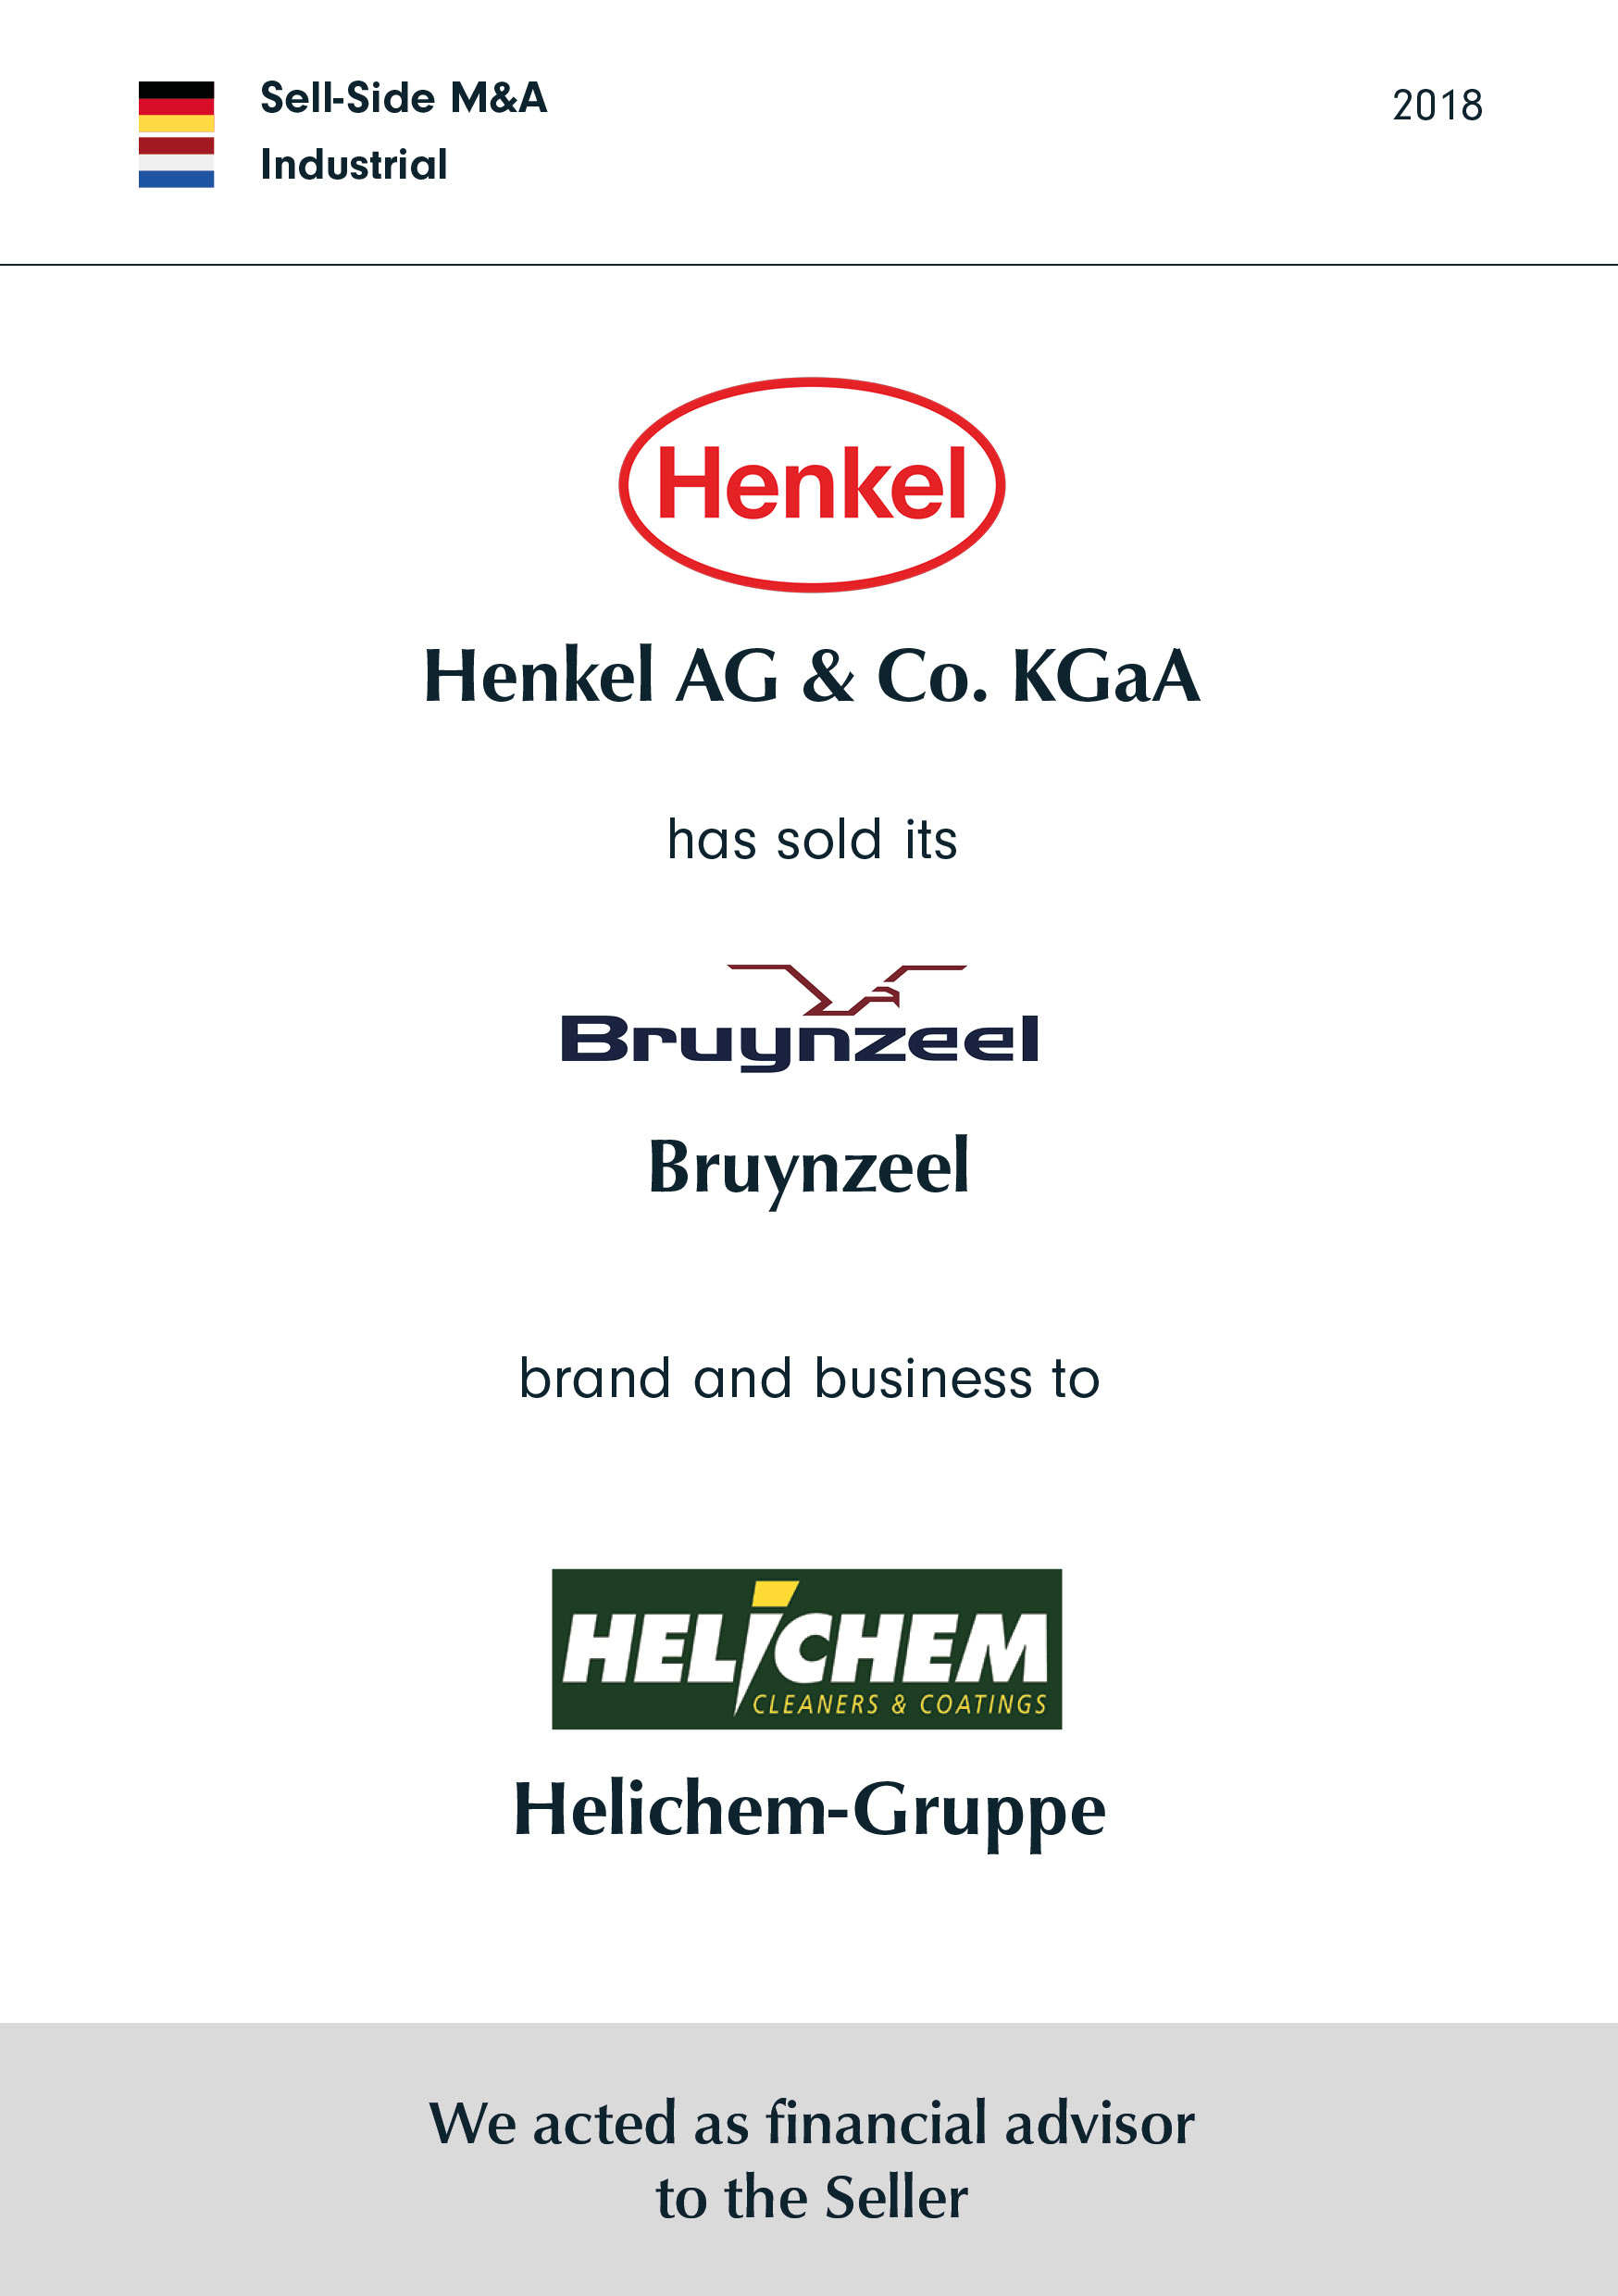 Henkel | has sold its | Bruynzeel | brand and business to | Helichem